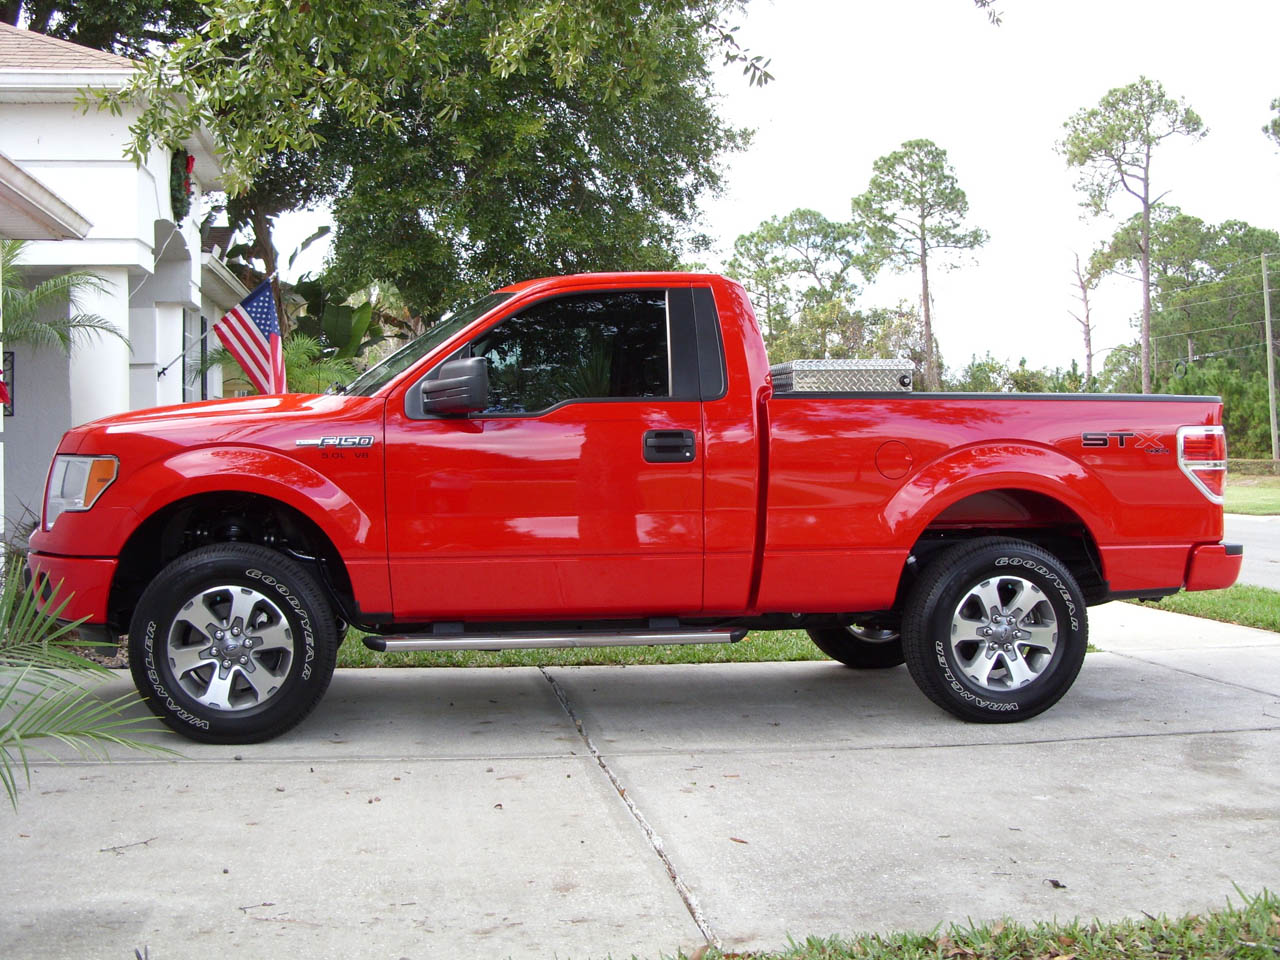 Race Red 2011 Ford F150 STX 4X4 5-star tune